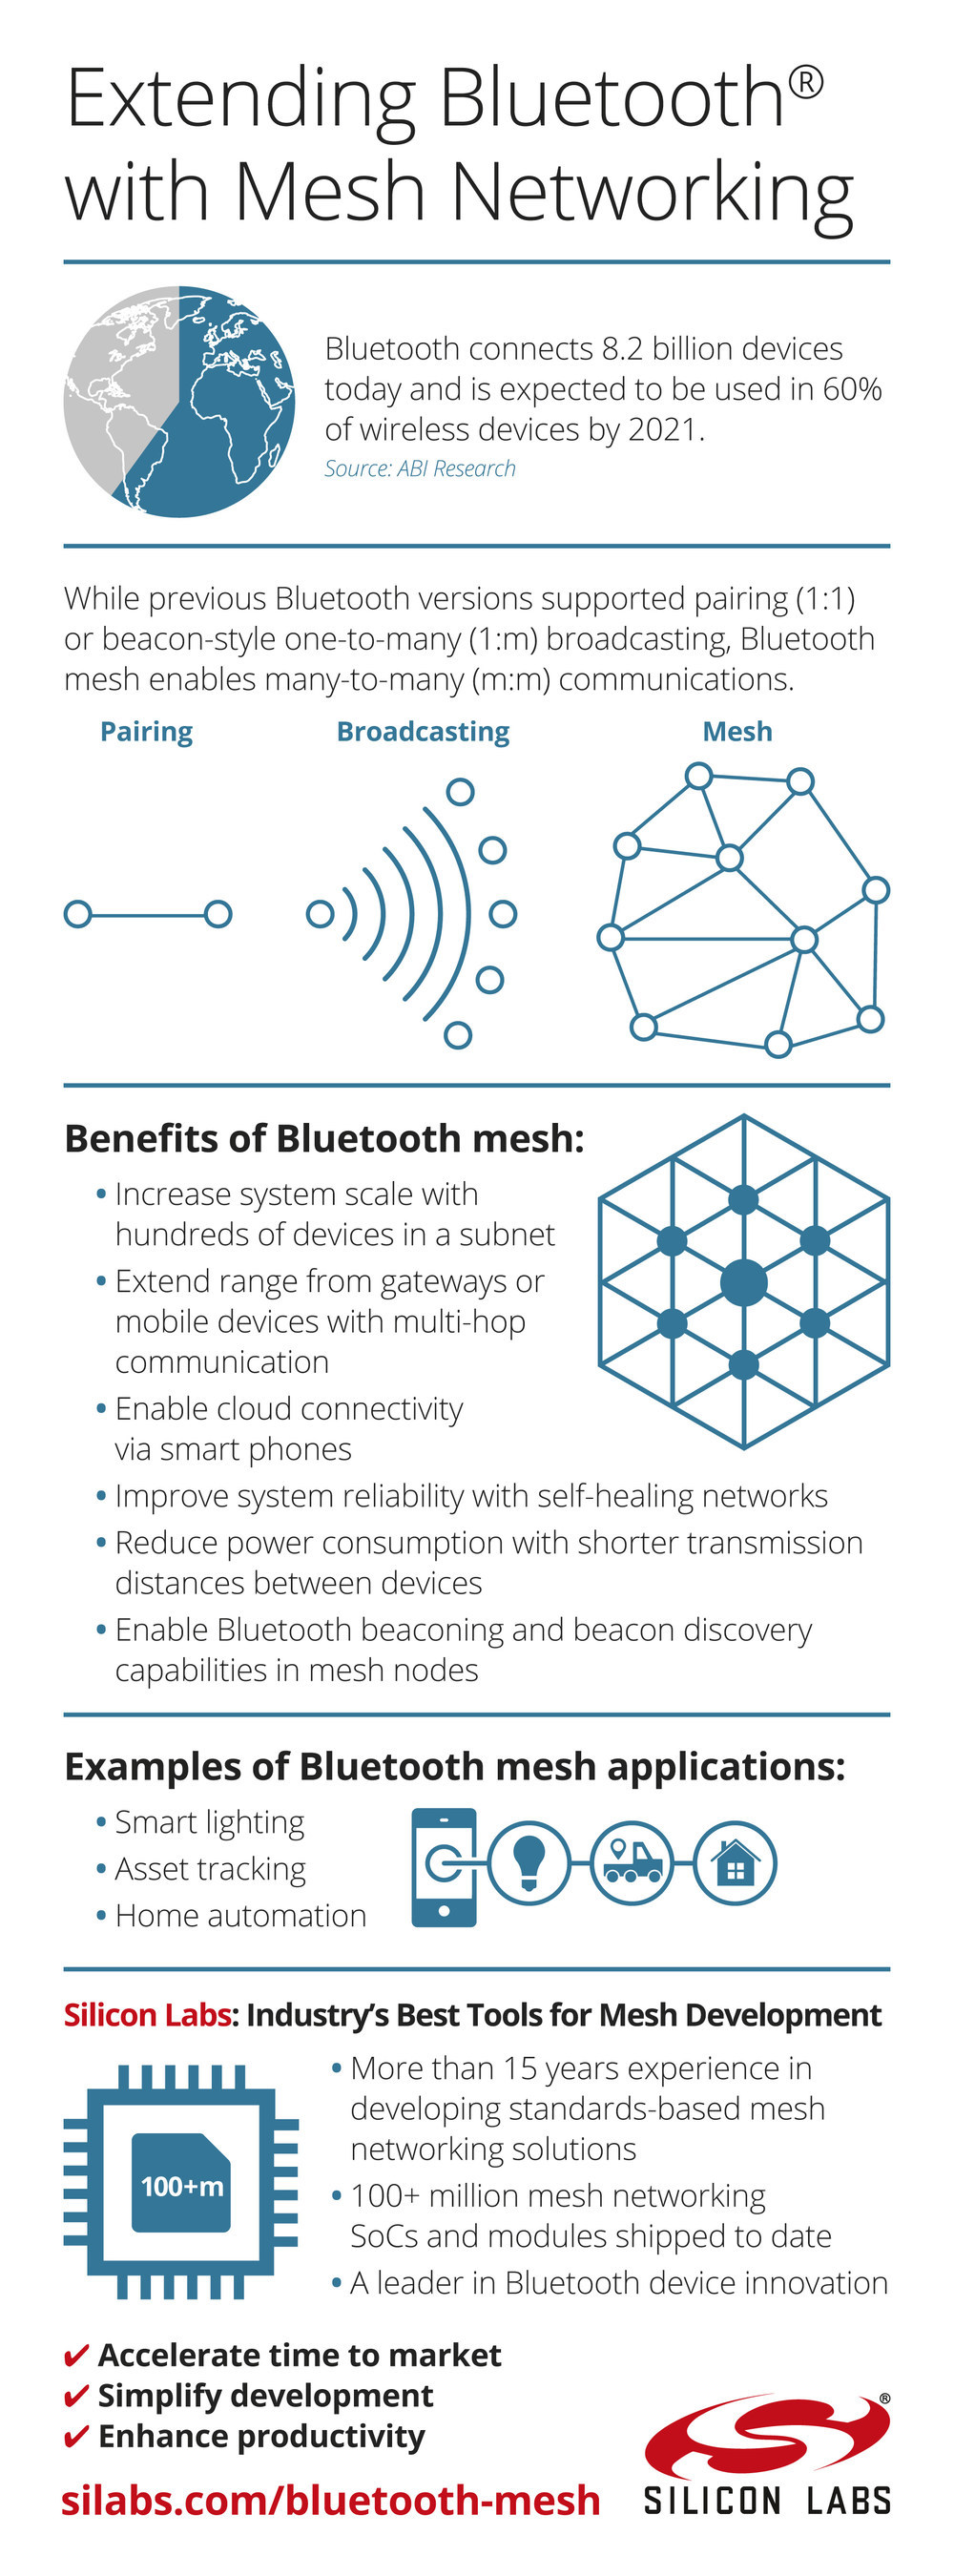 Silicon Labs has introduced a comprehensive suite of software and hardware that supports the new Bluetooth mesh specification.